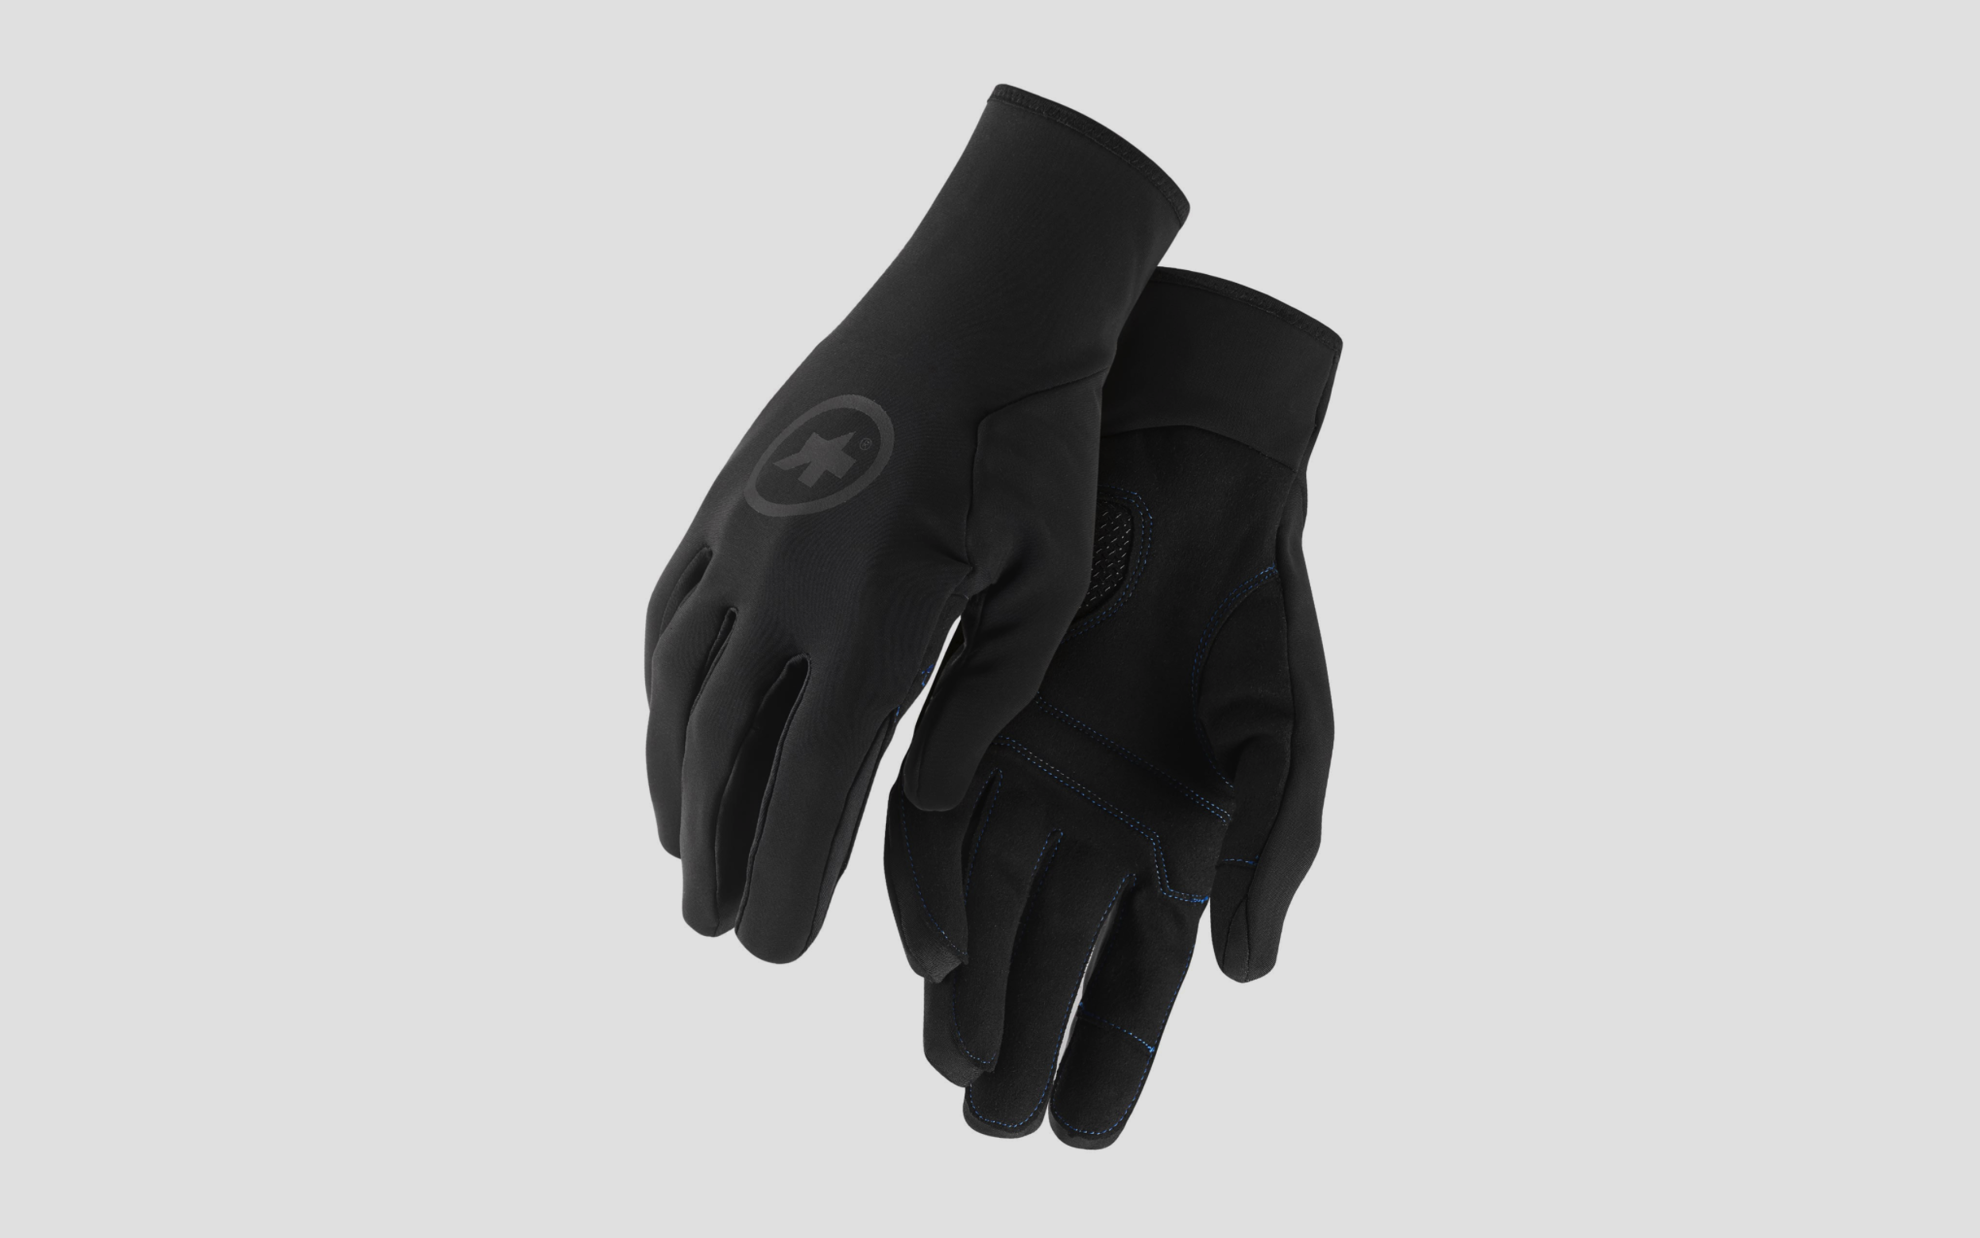 Picture of ASSOS GUANTI INVERNALI  WINTER GLOVES